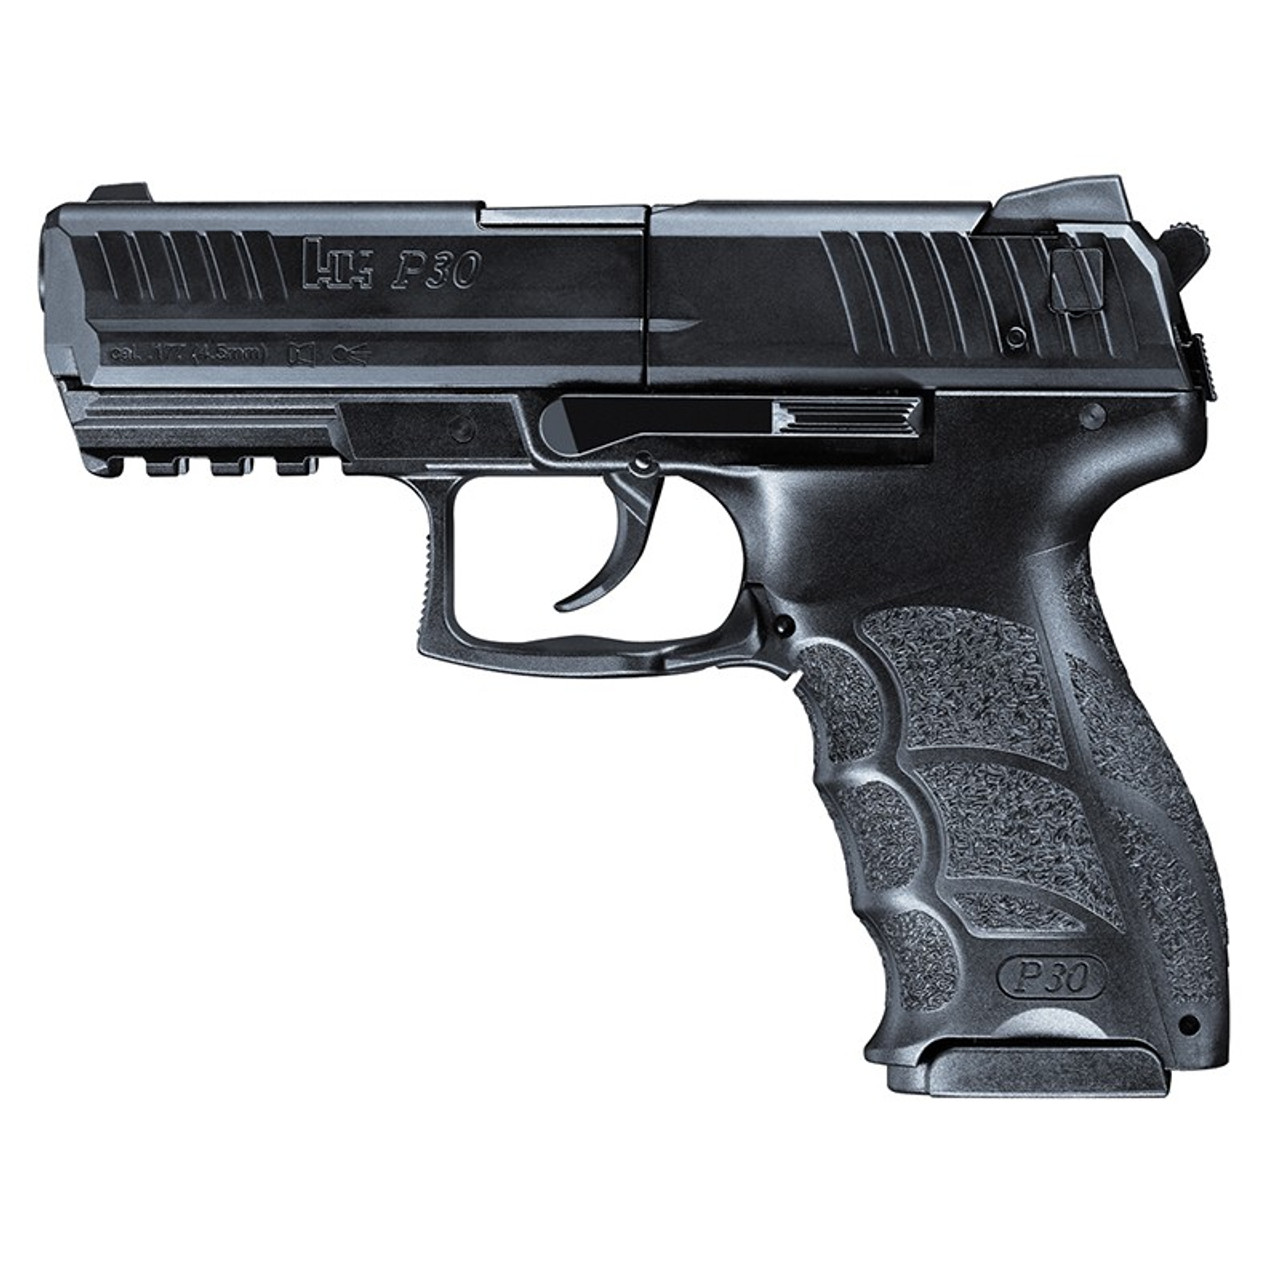 Umarex Heckler & Koch P30 CO2 Pistol